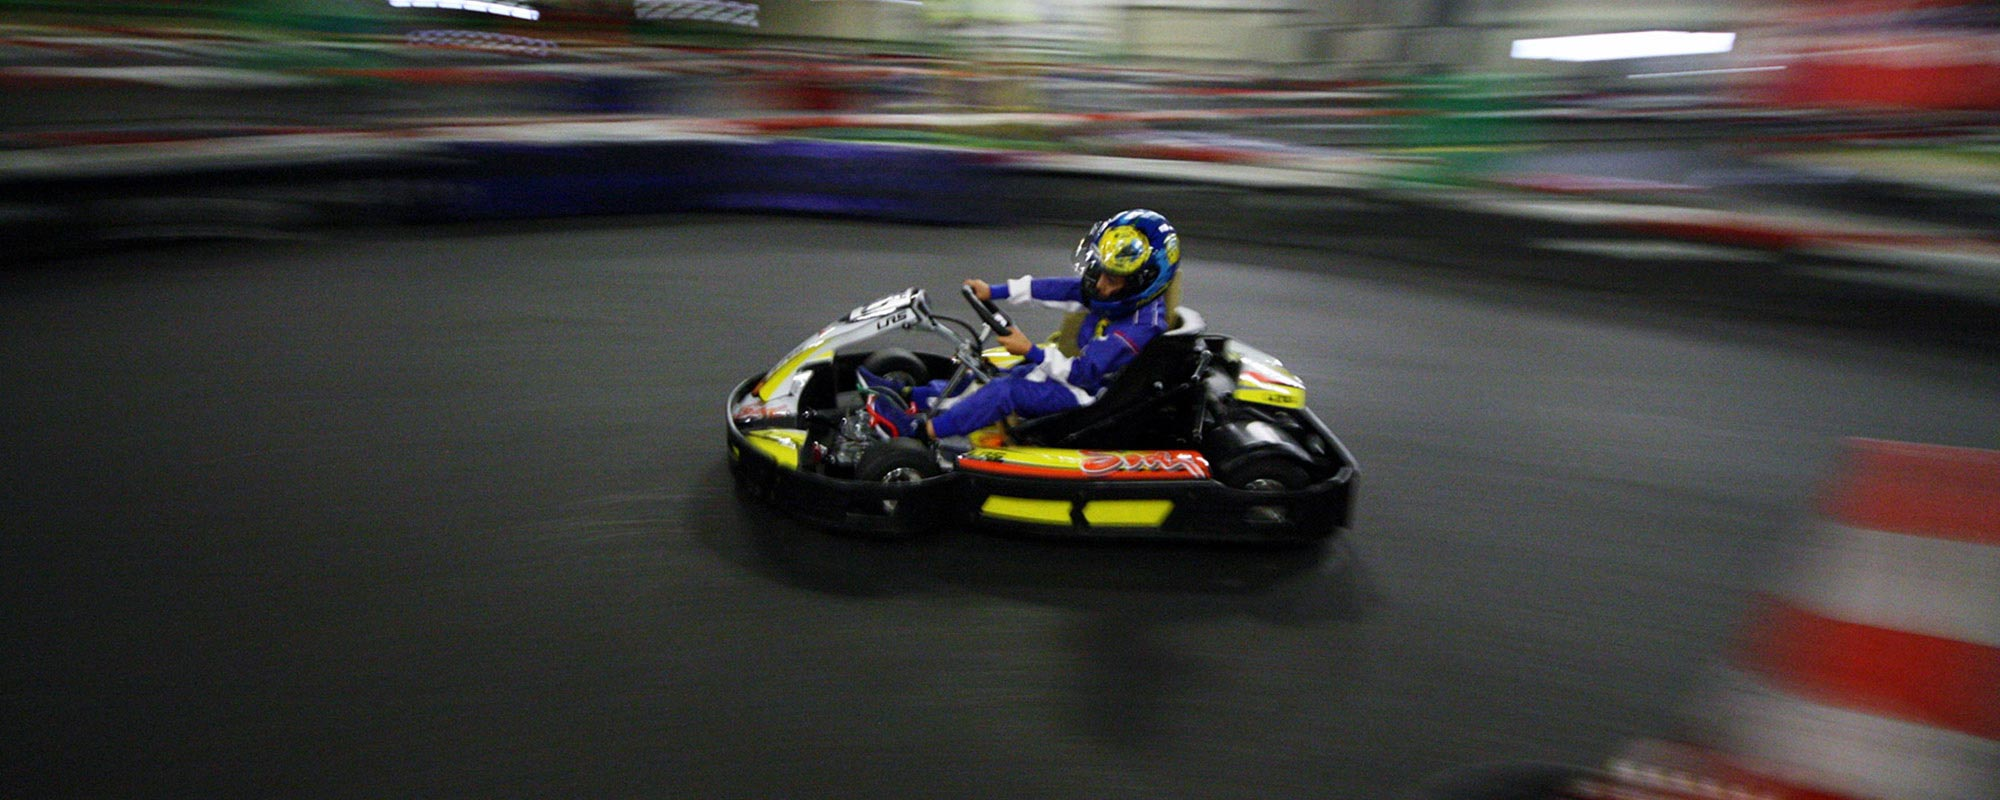 ebafkc-juniorkarting-2000x800-13